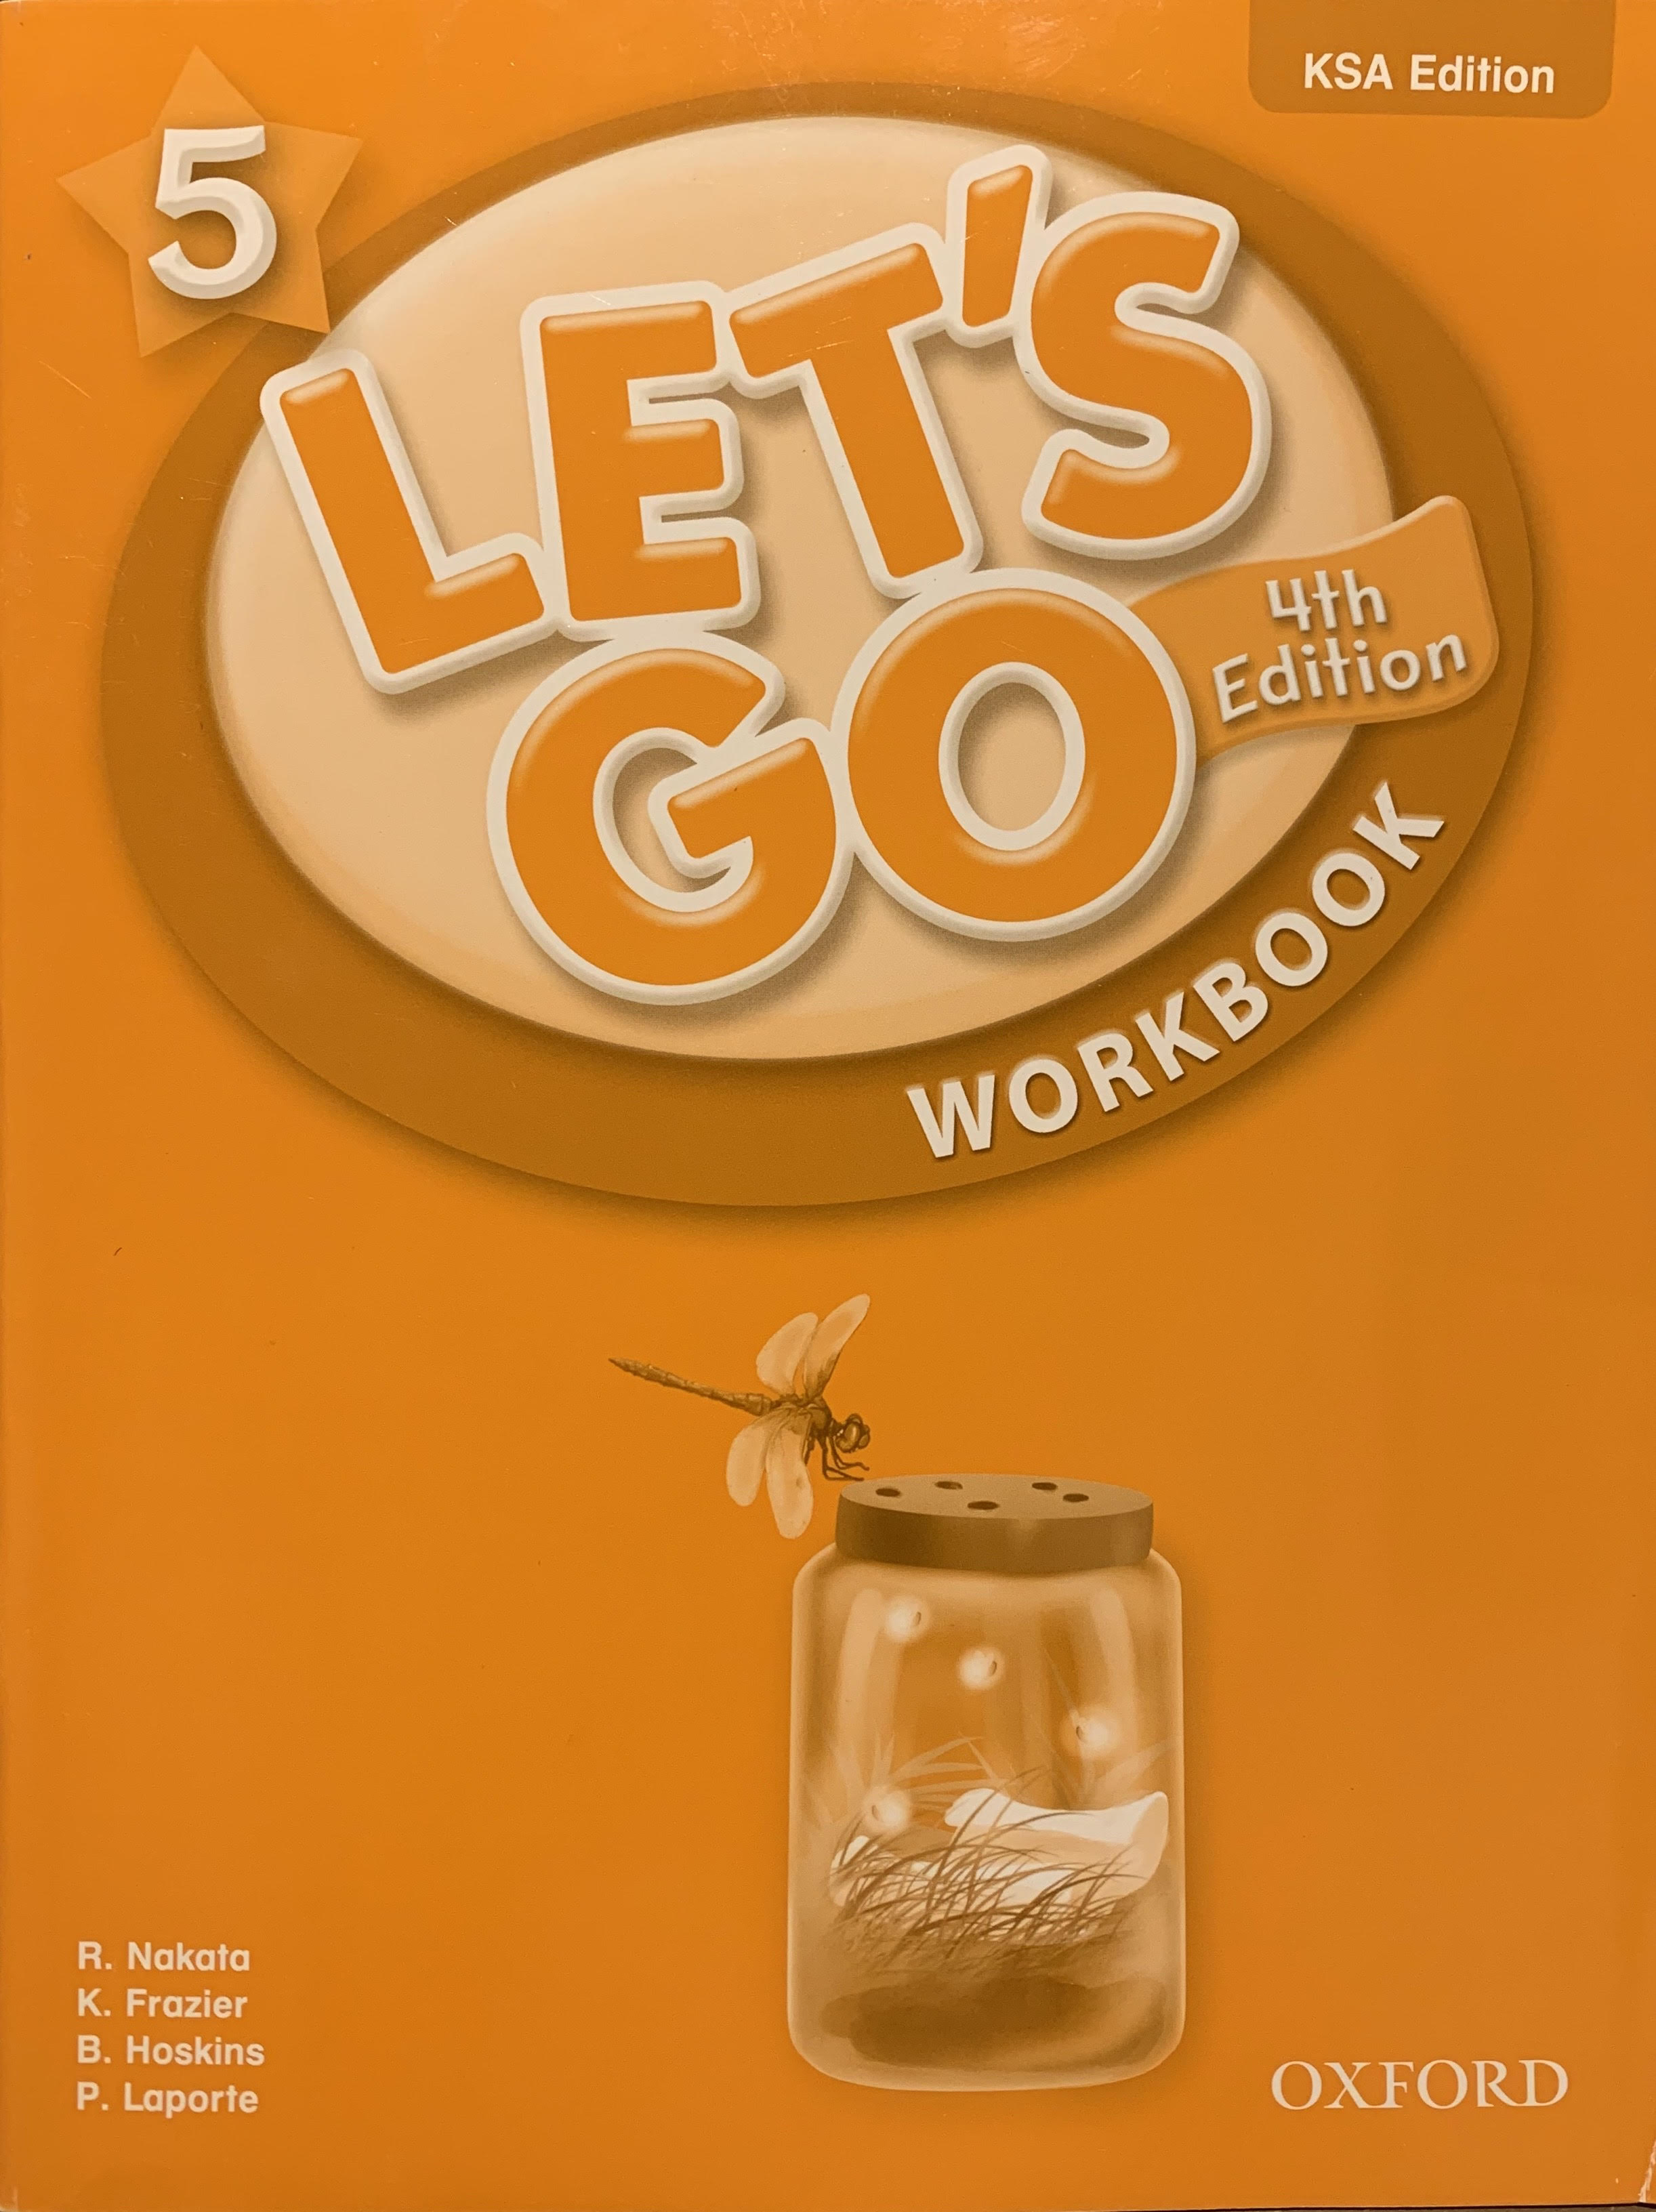 Let's Go Work 5